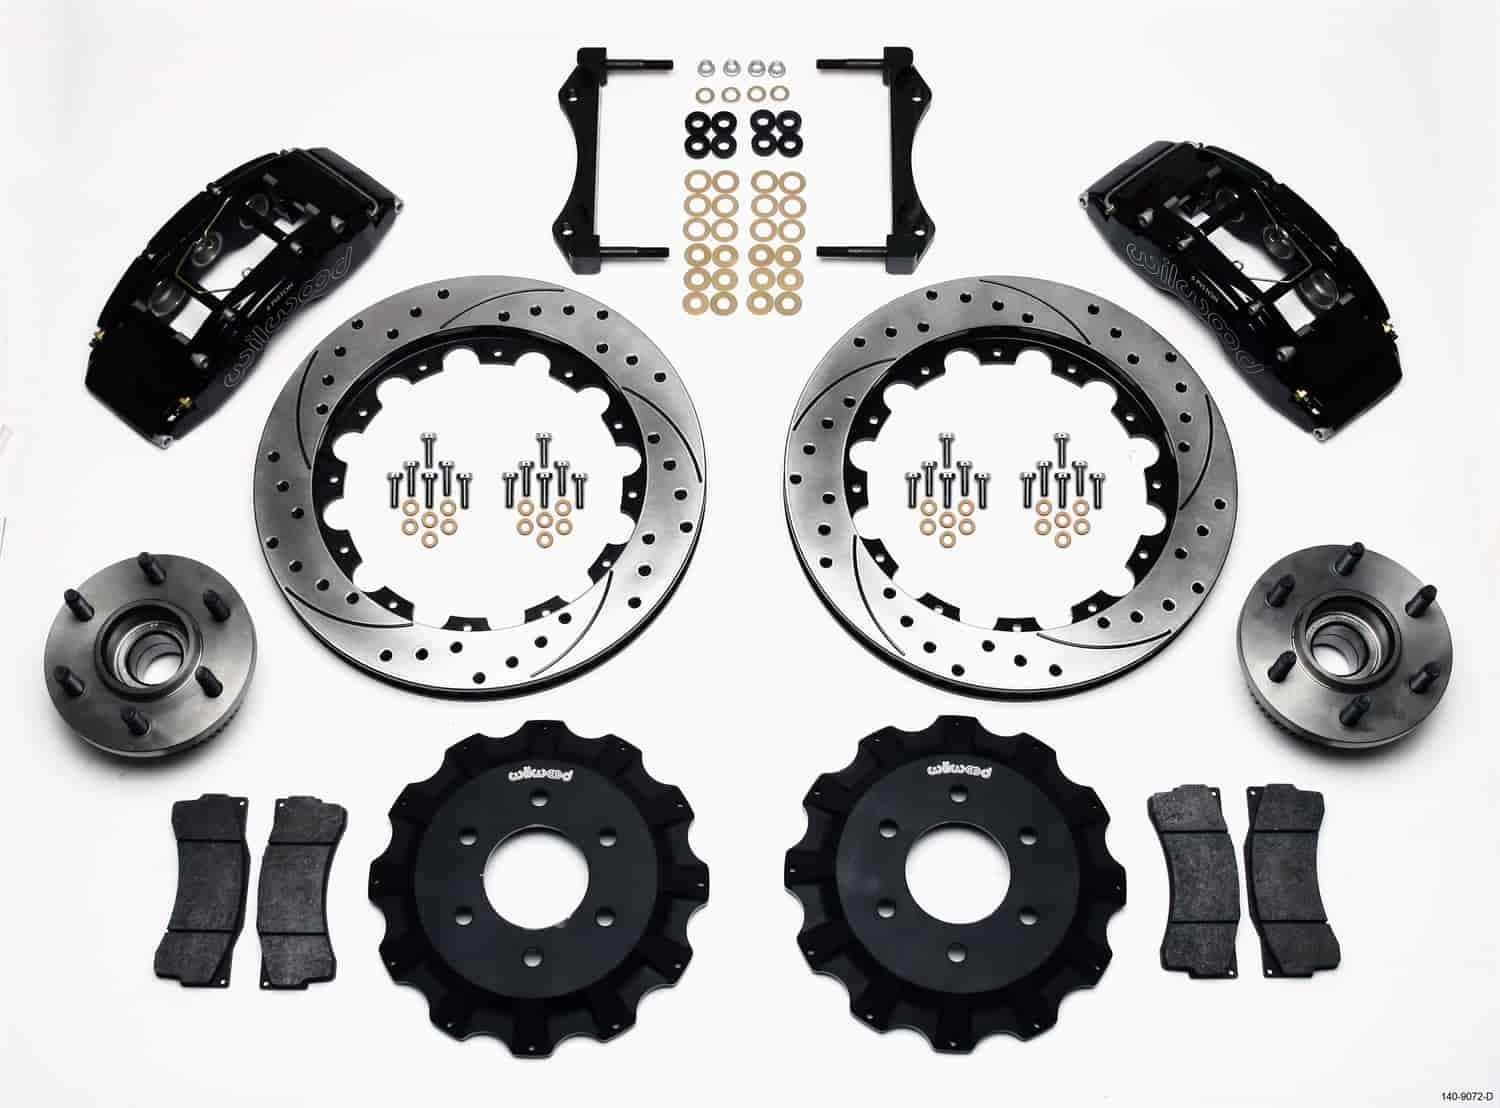 Wilwood 140-9072-D - Wilwood TC6R Big Brake Truck Front Brake Kit